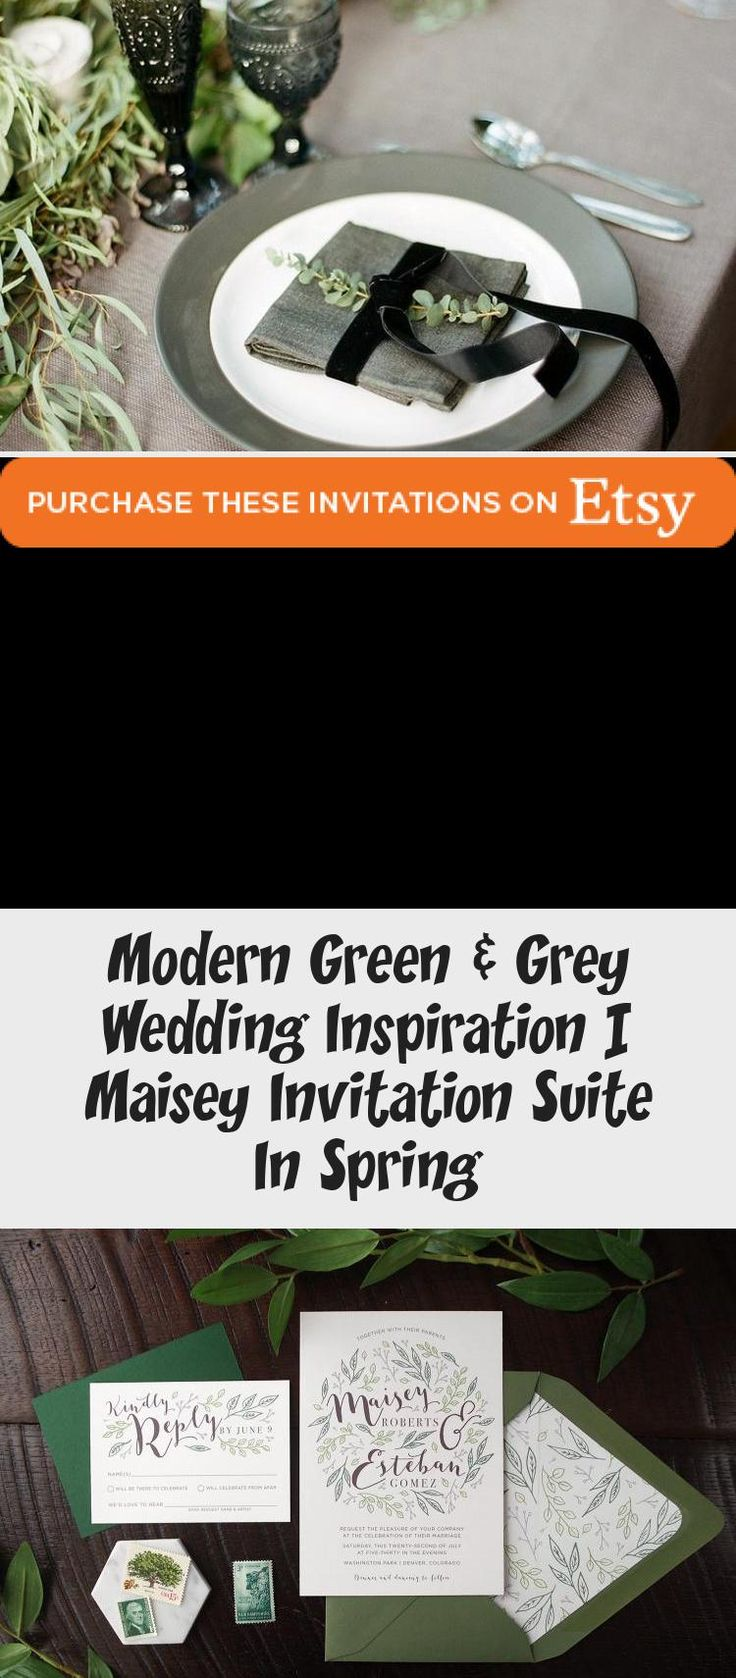 Botanical illustration Green & Grey Wedding inspiration perfect for a modern garden wedding or an urban wedding dripping with greenery. Palette of greens - emerald and sage. Earthy and organic with clean, modern touches. Bridesmaid dresses #BridesmaidDresses2018 #BridesmaidDresses2019 #BridesmaidDressesSequin #BlackBridesmaidDresses #SilverBridesmaidDresses